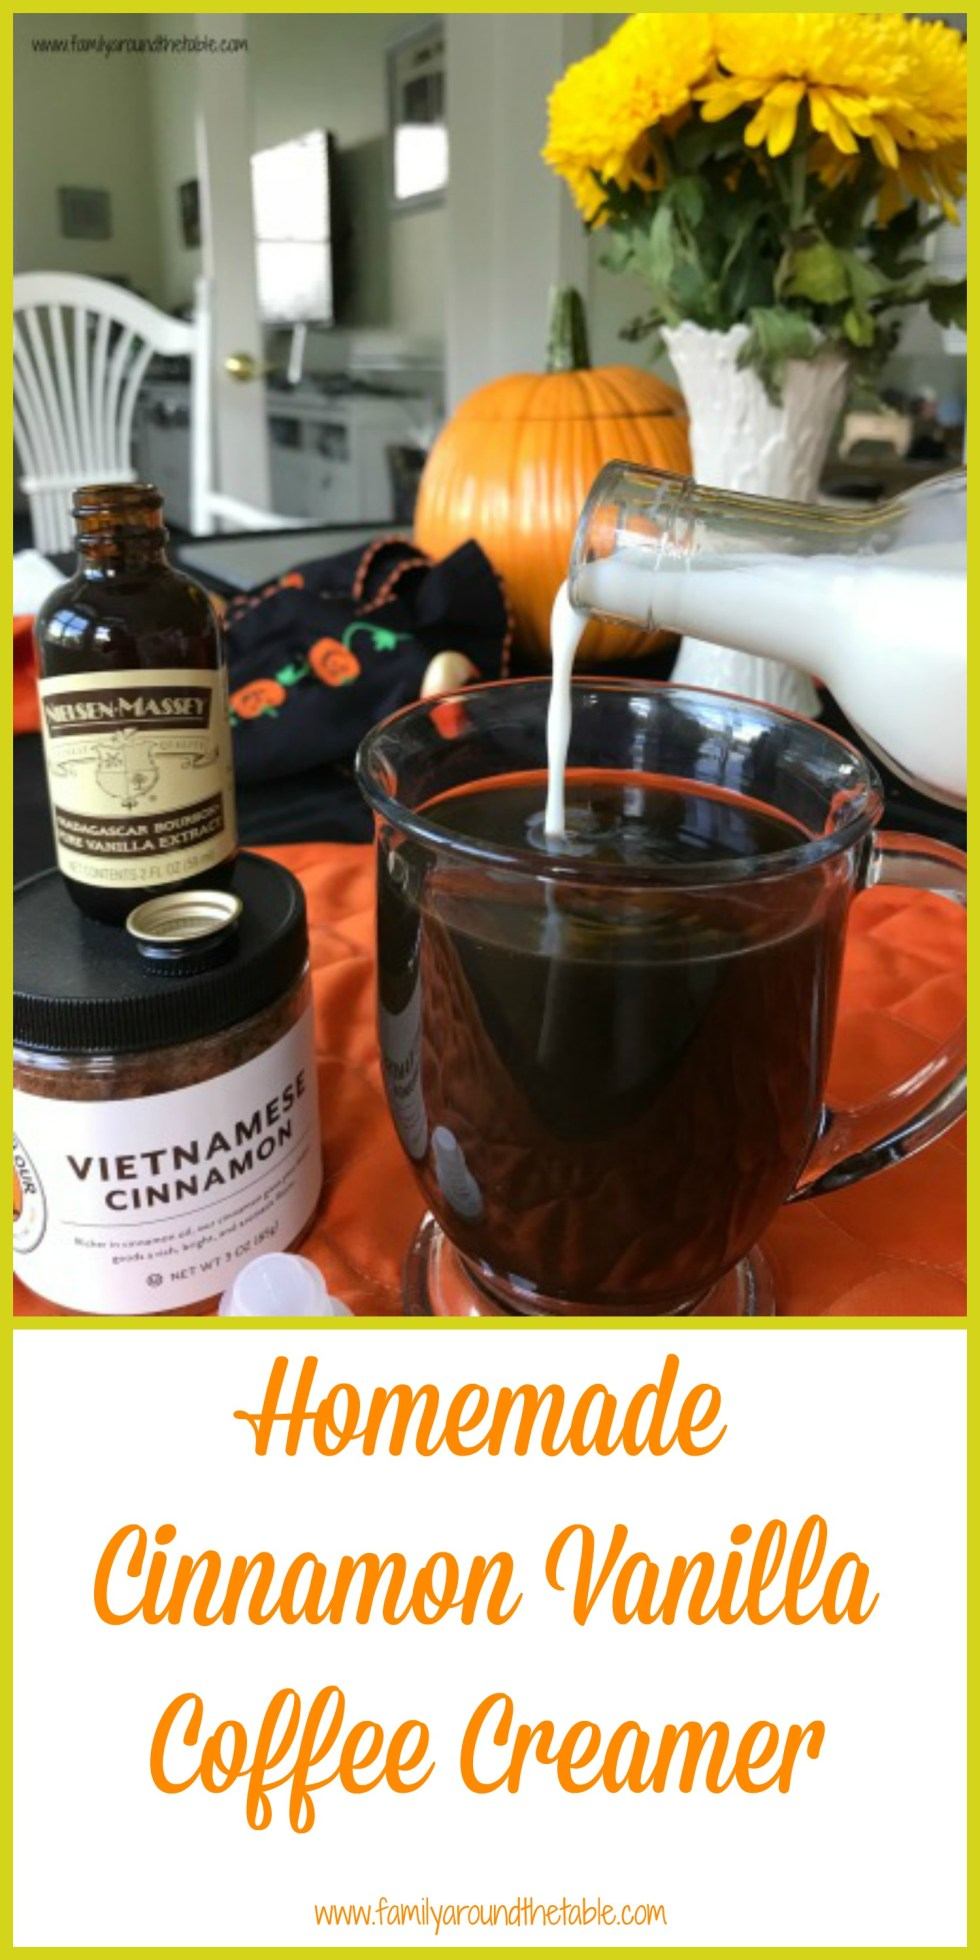 Keep homemade cinnamon vanilla coffee creamer in your fridge for mornings you want a little something special in your coffee.